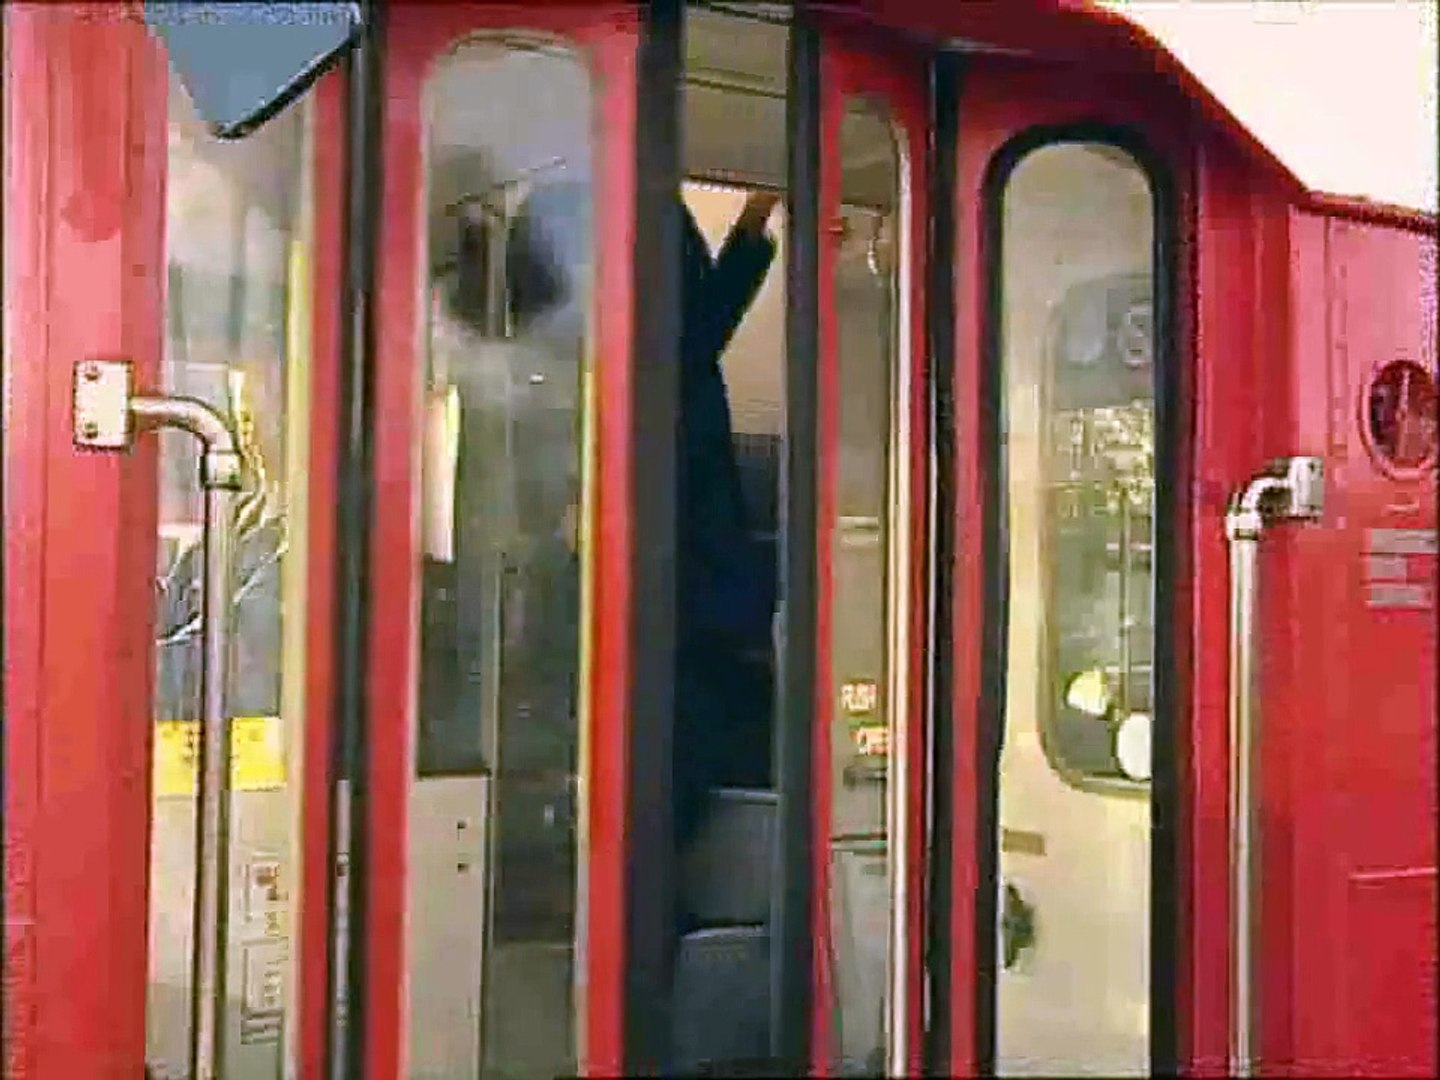 Bus Business Volume 1 - The Last of the Lowestoft VR's (Trailer for DVD)